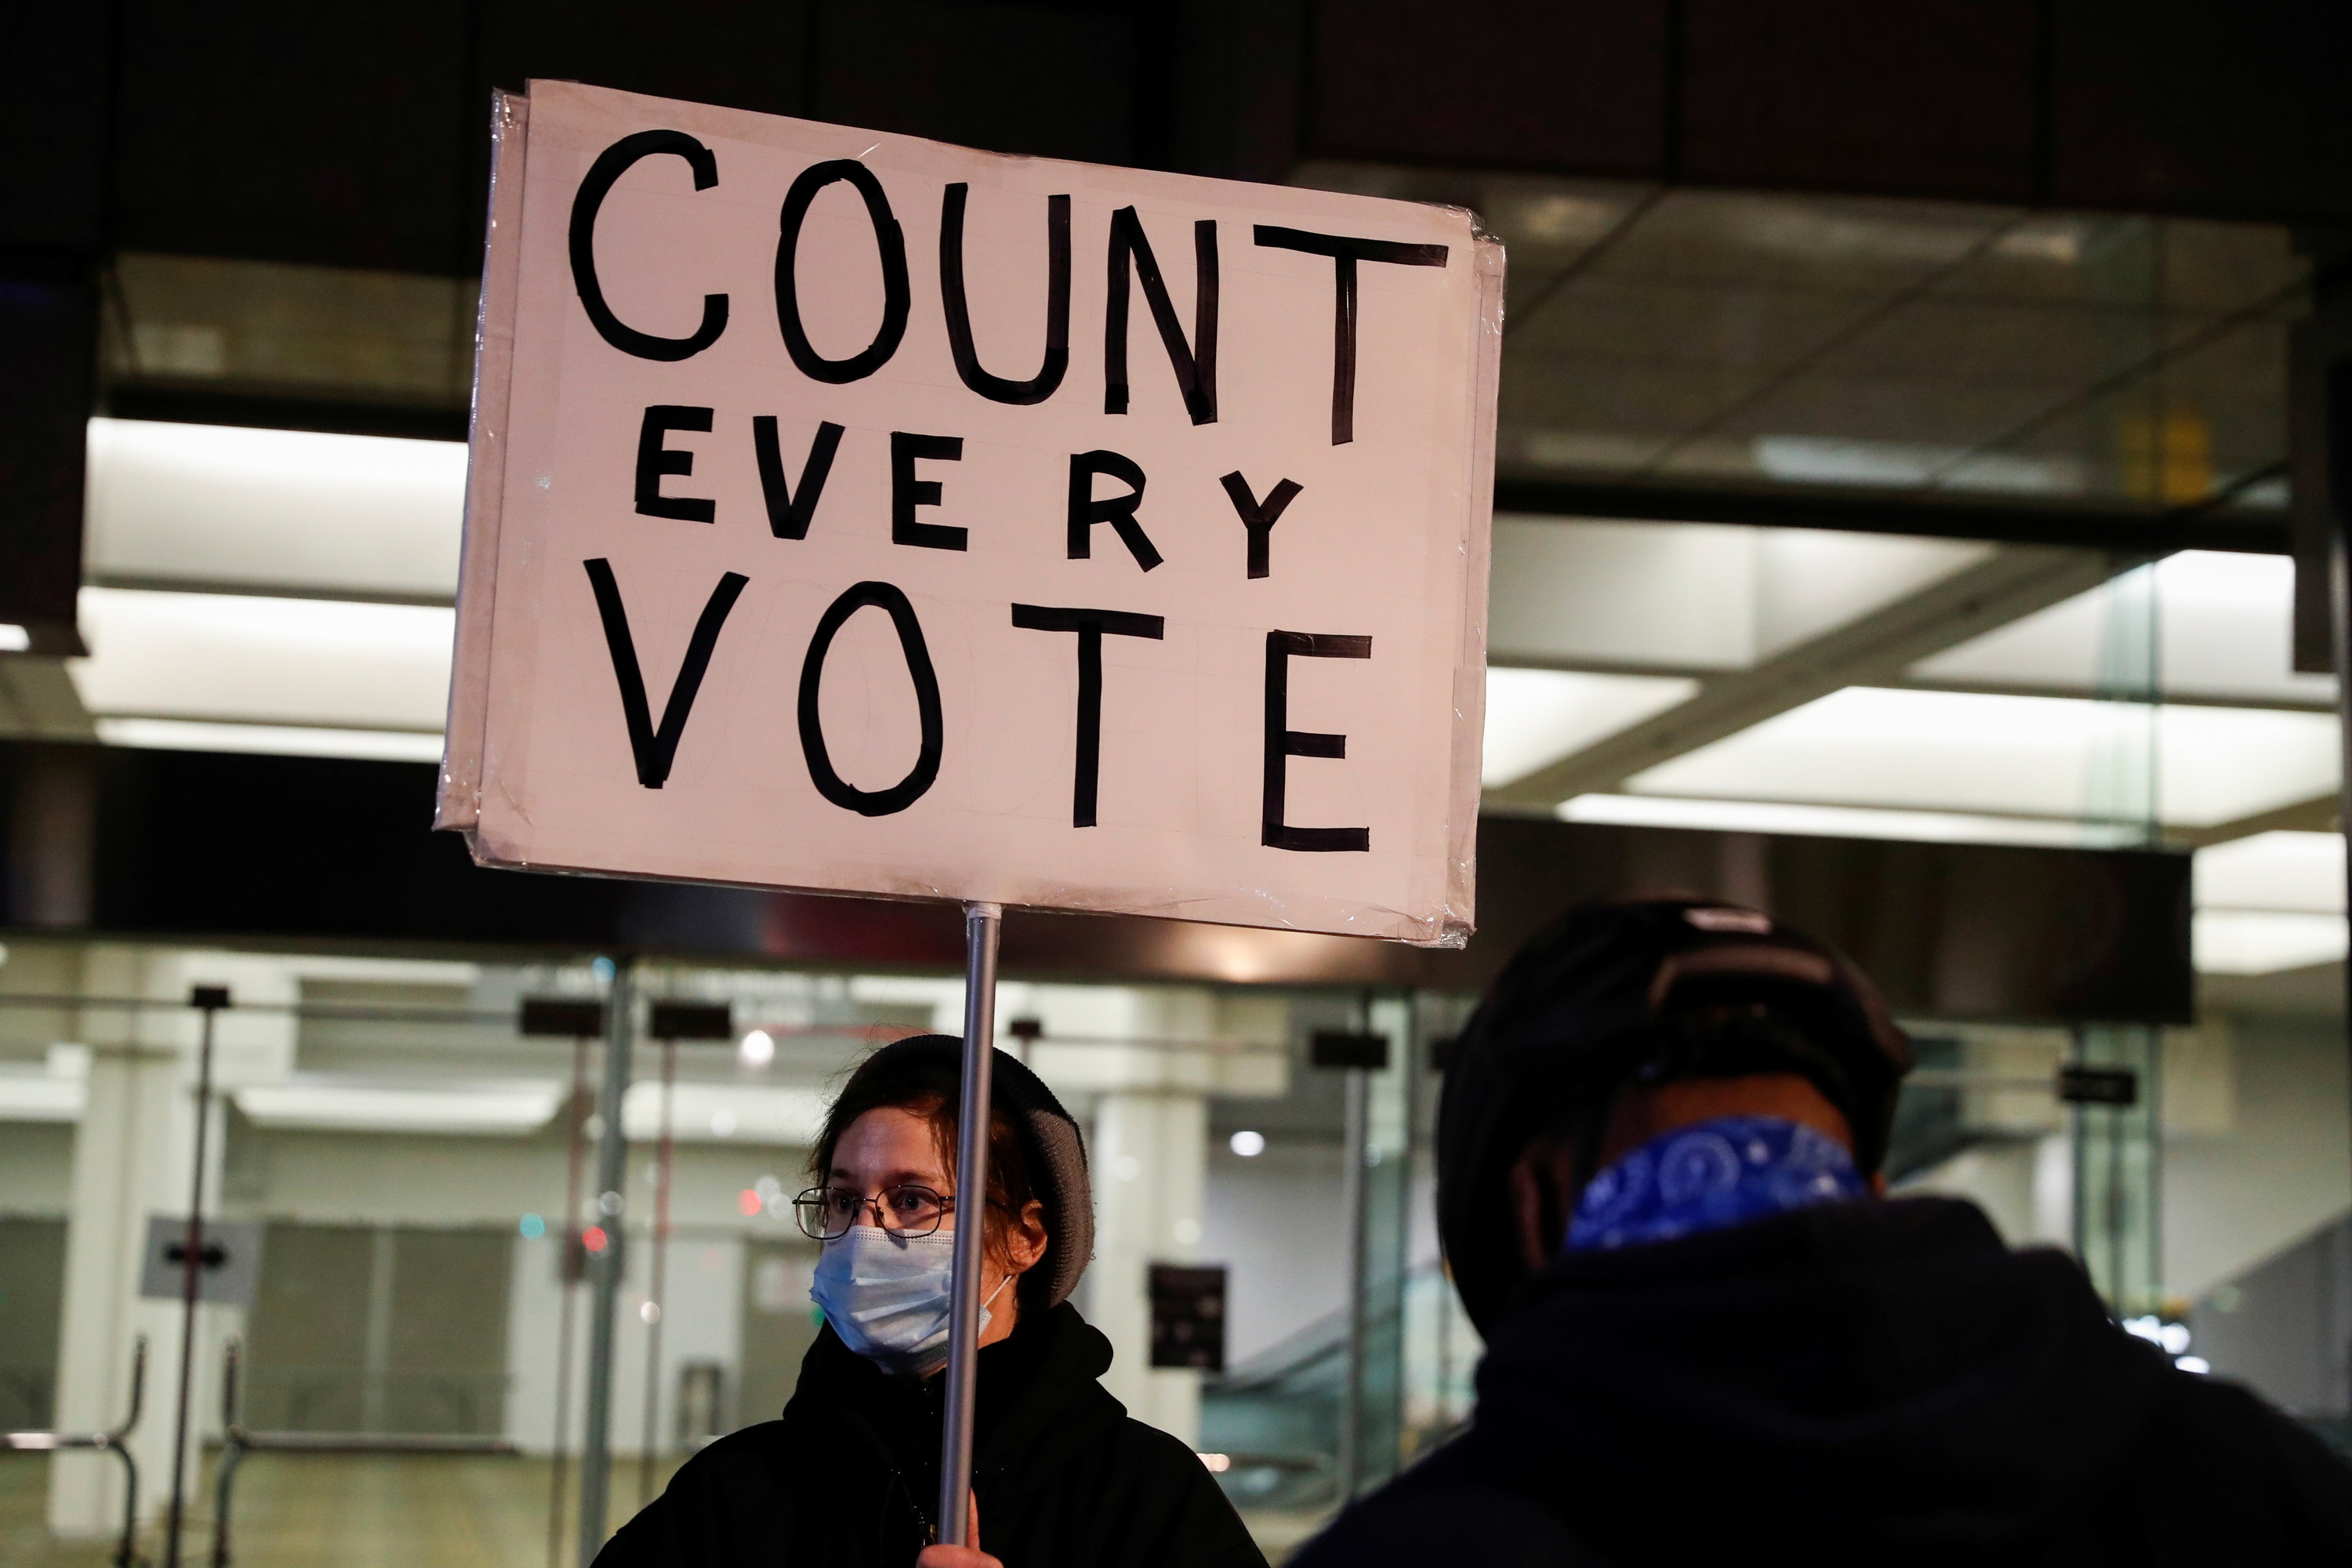 A person holding a count every vote sign